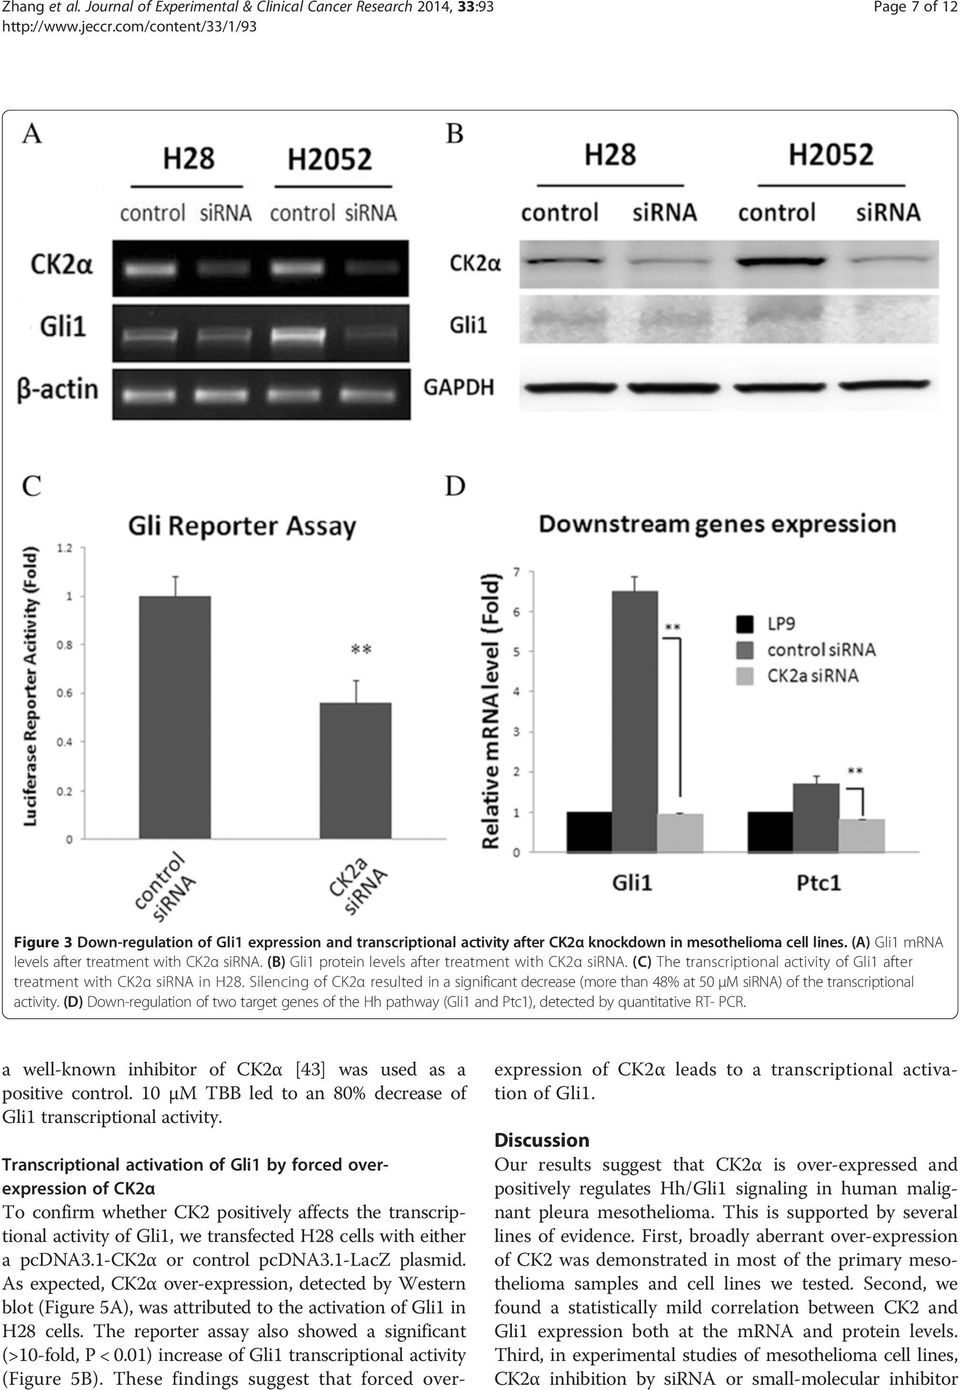 (A) Gli1 mrna levels after treatment with CK2α sirna. (B) Gli1 protein levels after treatment with CK2α sirna. (C) The transcriptional activity of Gli1 after treatment with CK2α sirna in H28.